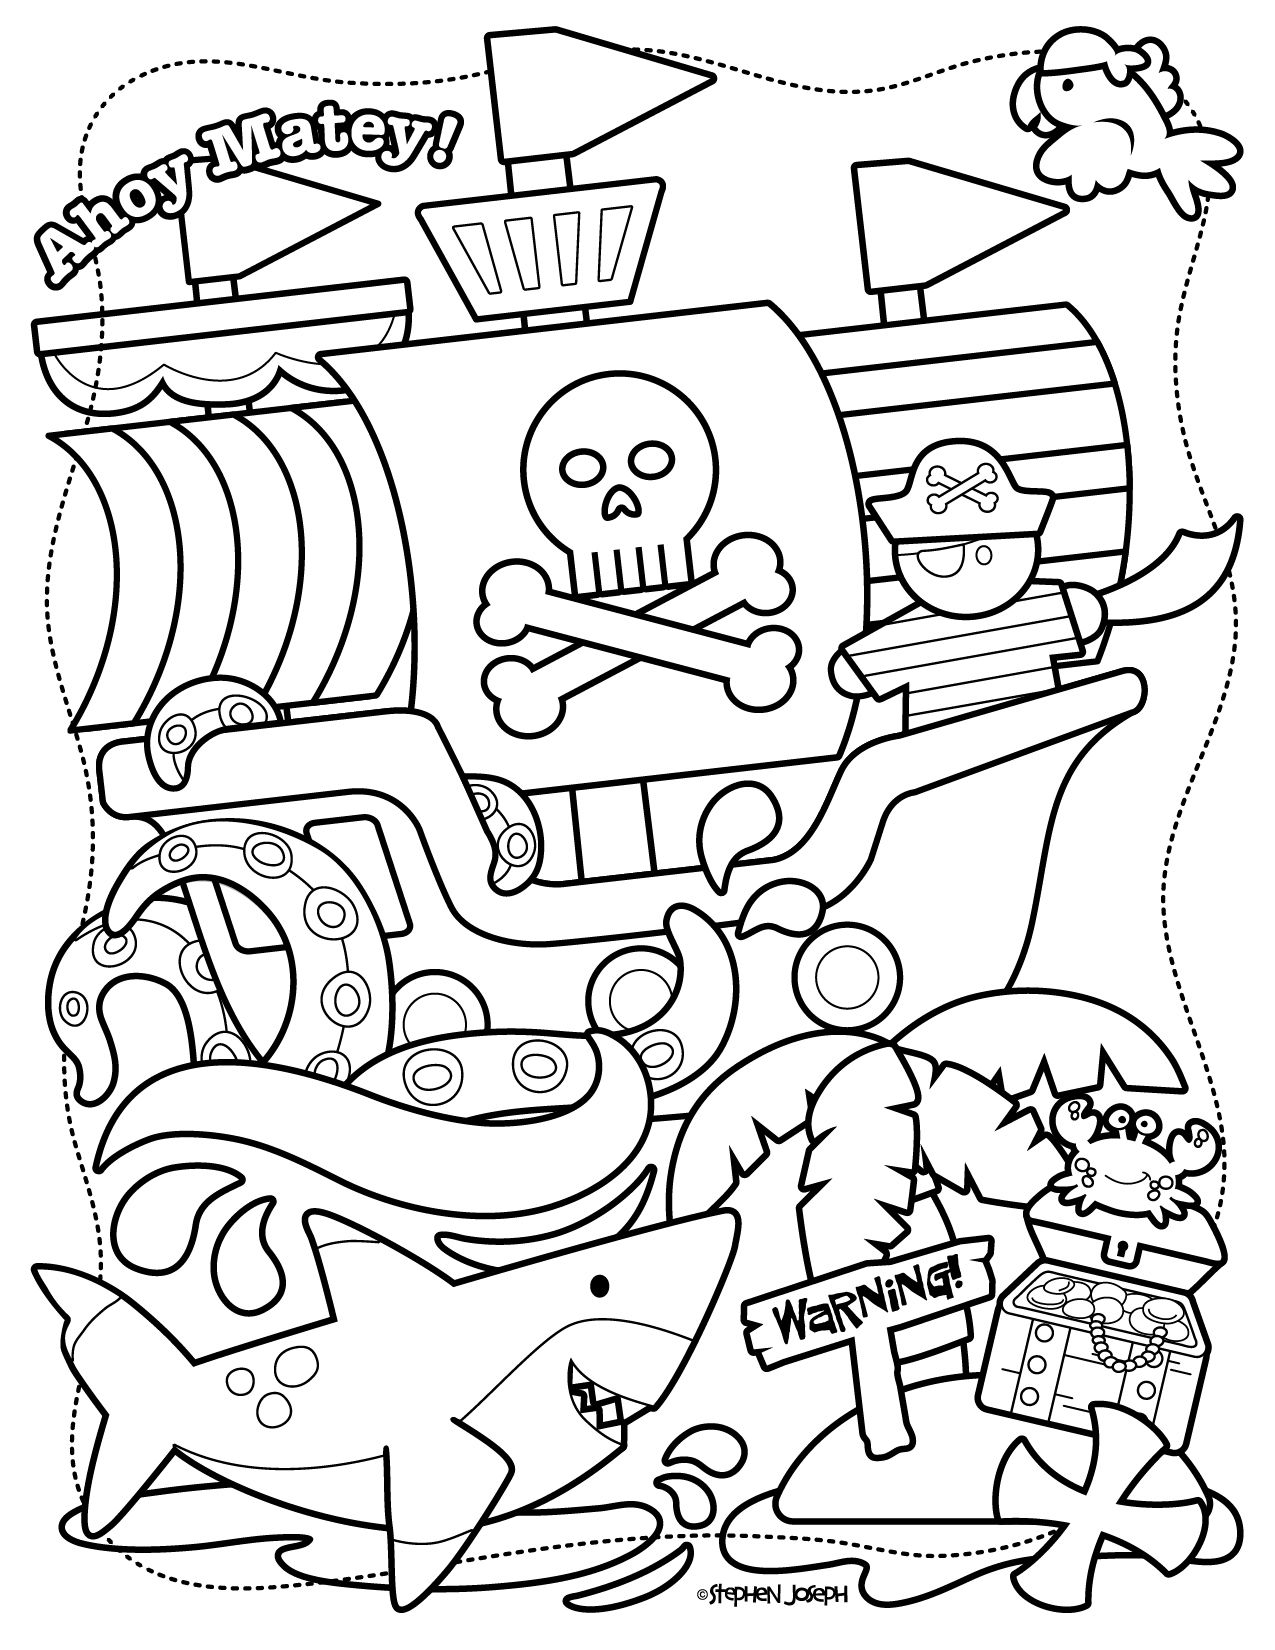 Pirate Coloring Page Printable Free By Stephen Joseph Gifts Pirate Coloring Pages Coloring Pages Princess Coloring Pages